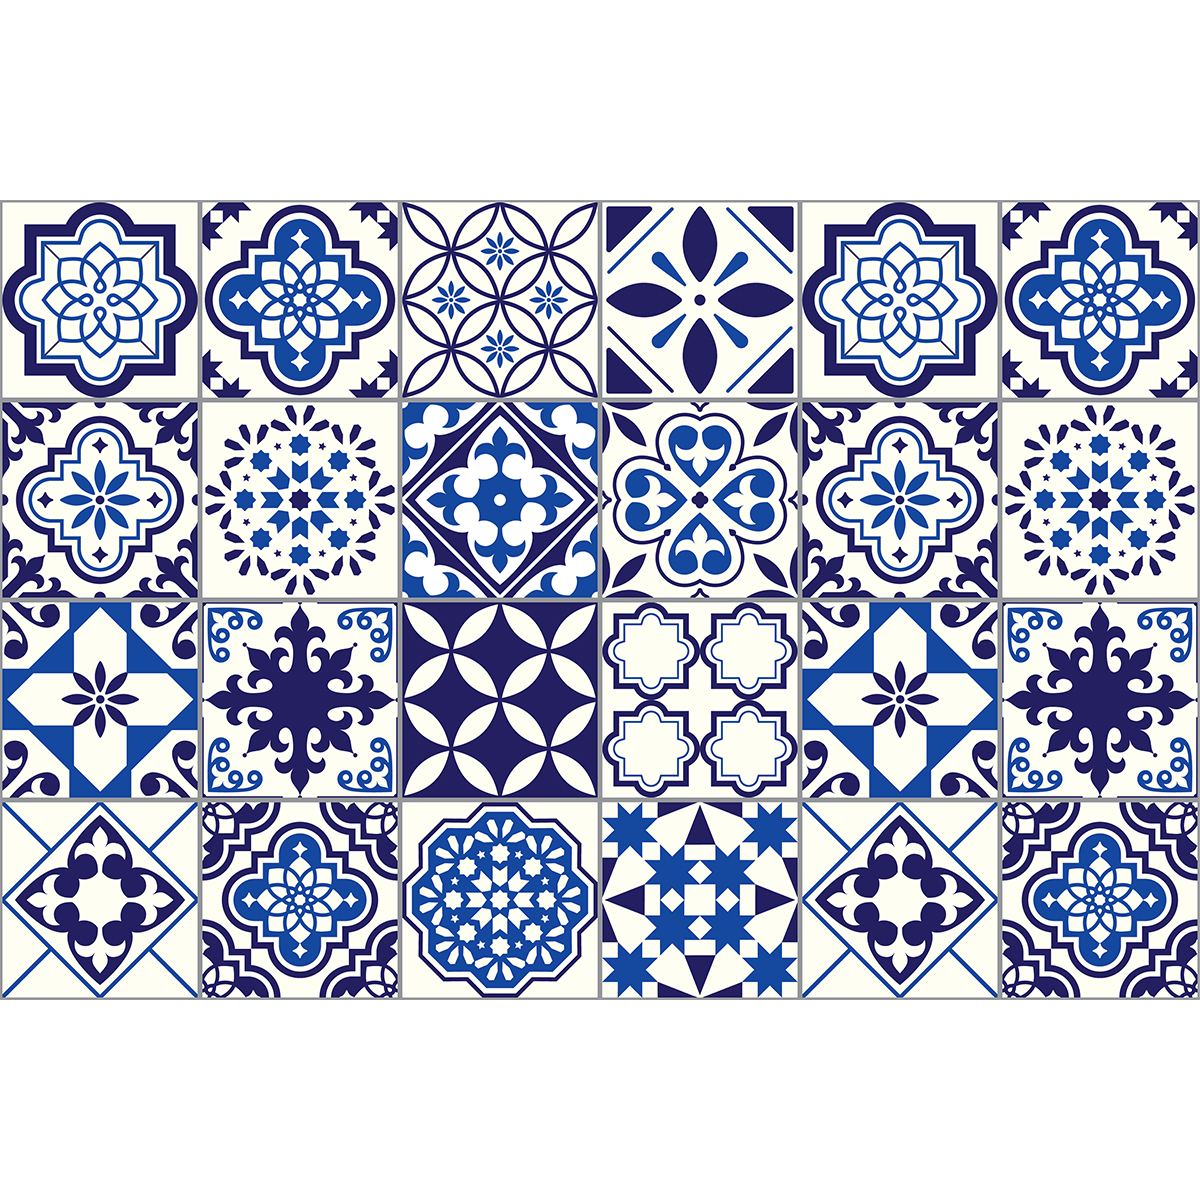 24 stickers carrelages azulejos eusebio stickers cuisine carrelages ambiance sticker - Stickers cuisine carrelage ...